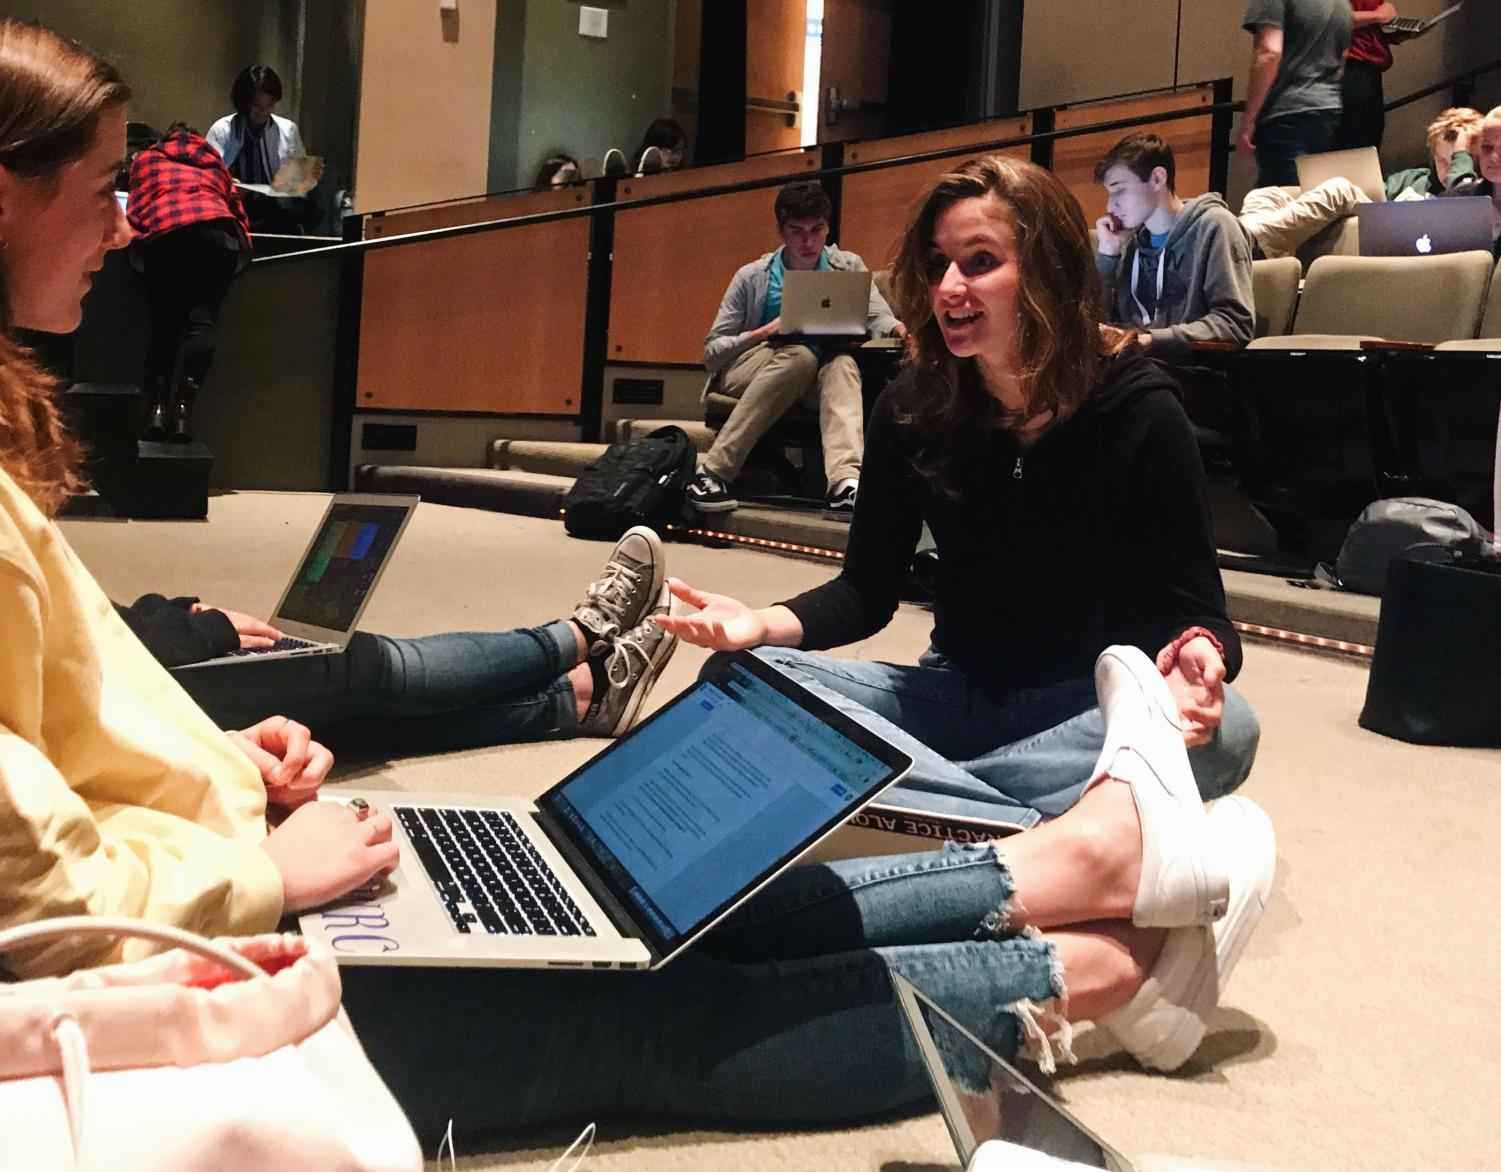 Seniors Wellsley Cohen and Natalia Varni work on college applications during the college counseling workshop. They specifically focused on writing their supplemental essays today.